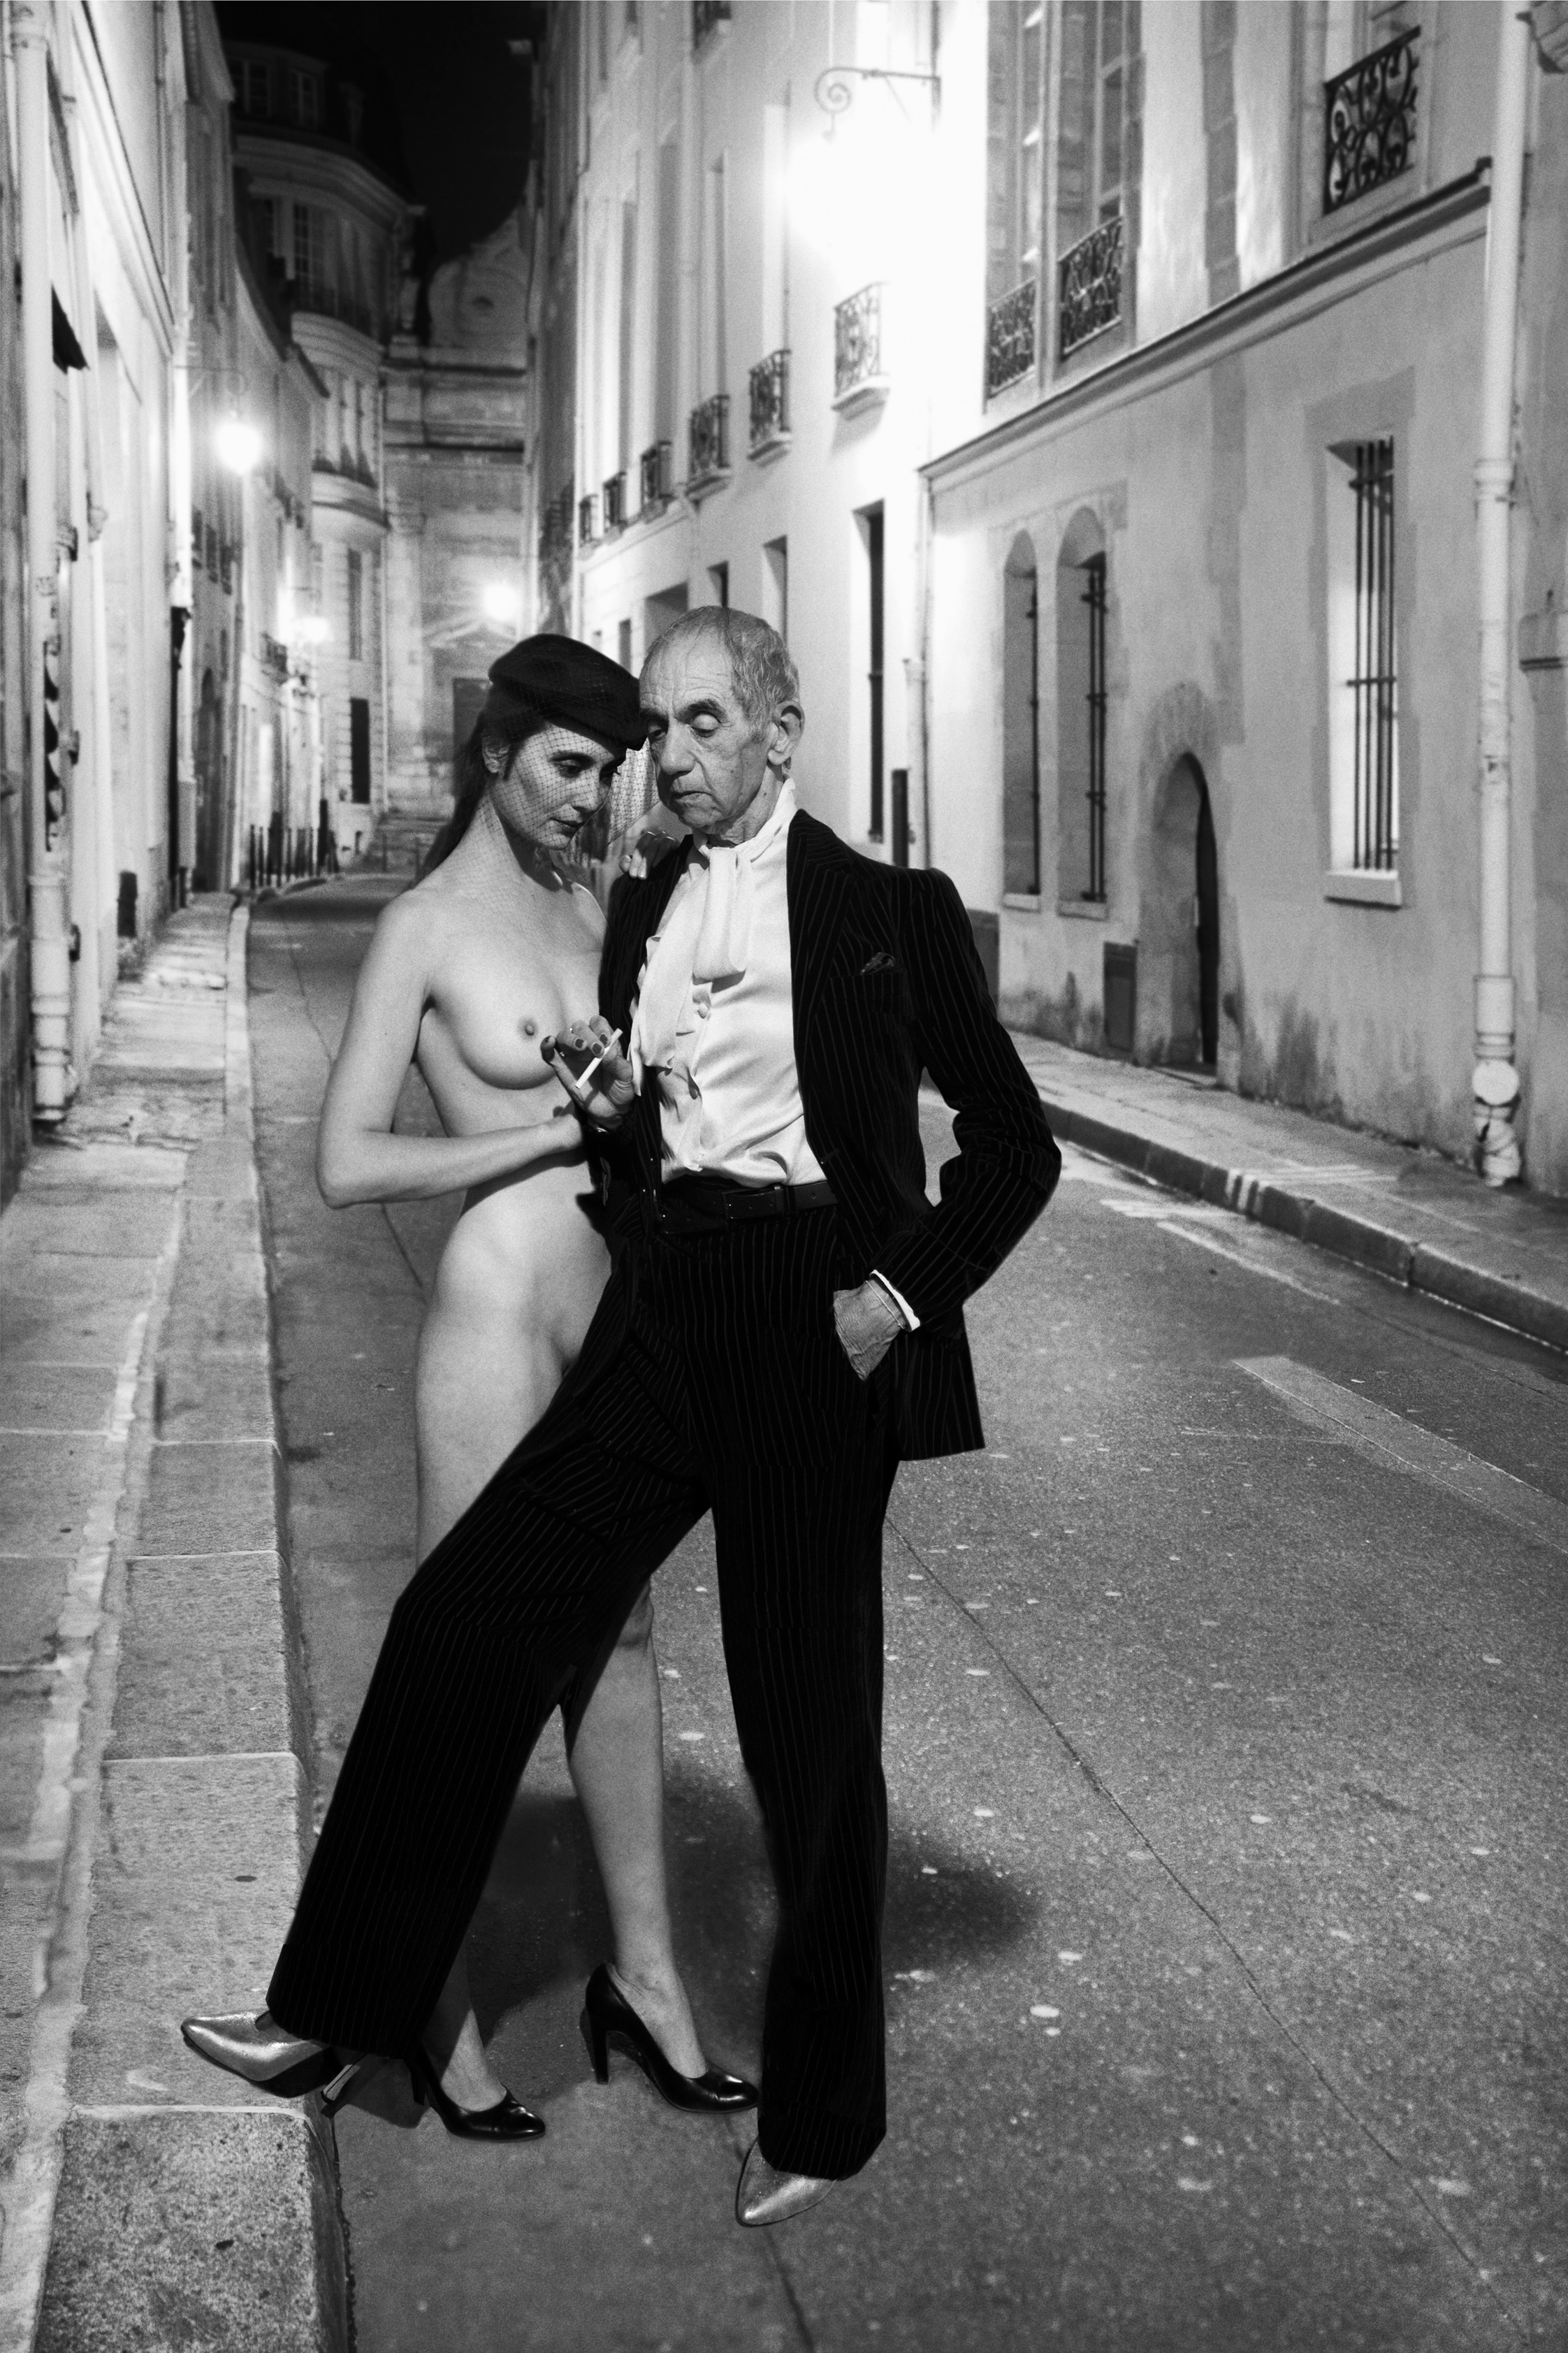 © Catherine Balet, 2014. Courtesy galerie Thierry Bigaignon    Hommage à Helmut Newton, YSL, French Vogue, rue Aubriot, 1975, série Looking for the Masters in Ricardo's golden shoes   © Catherine Balet, 2014. Courtesy galerie Thierry Bigaignon